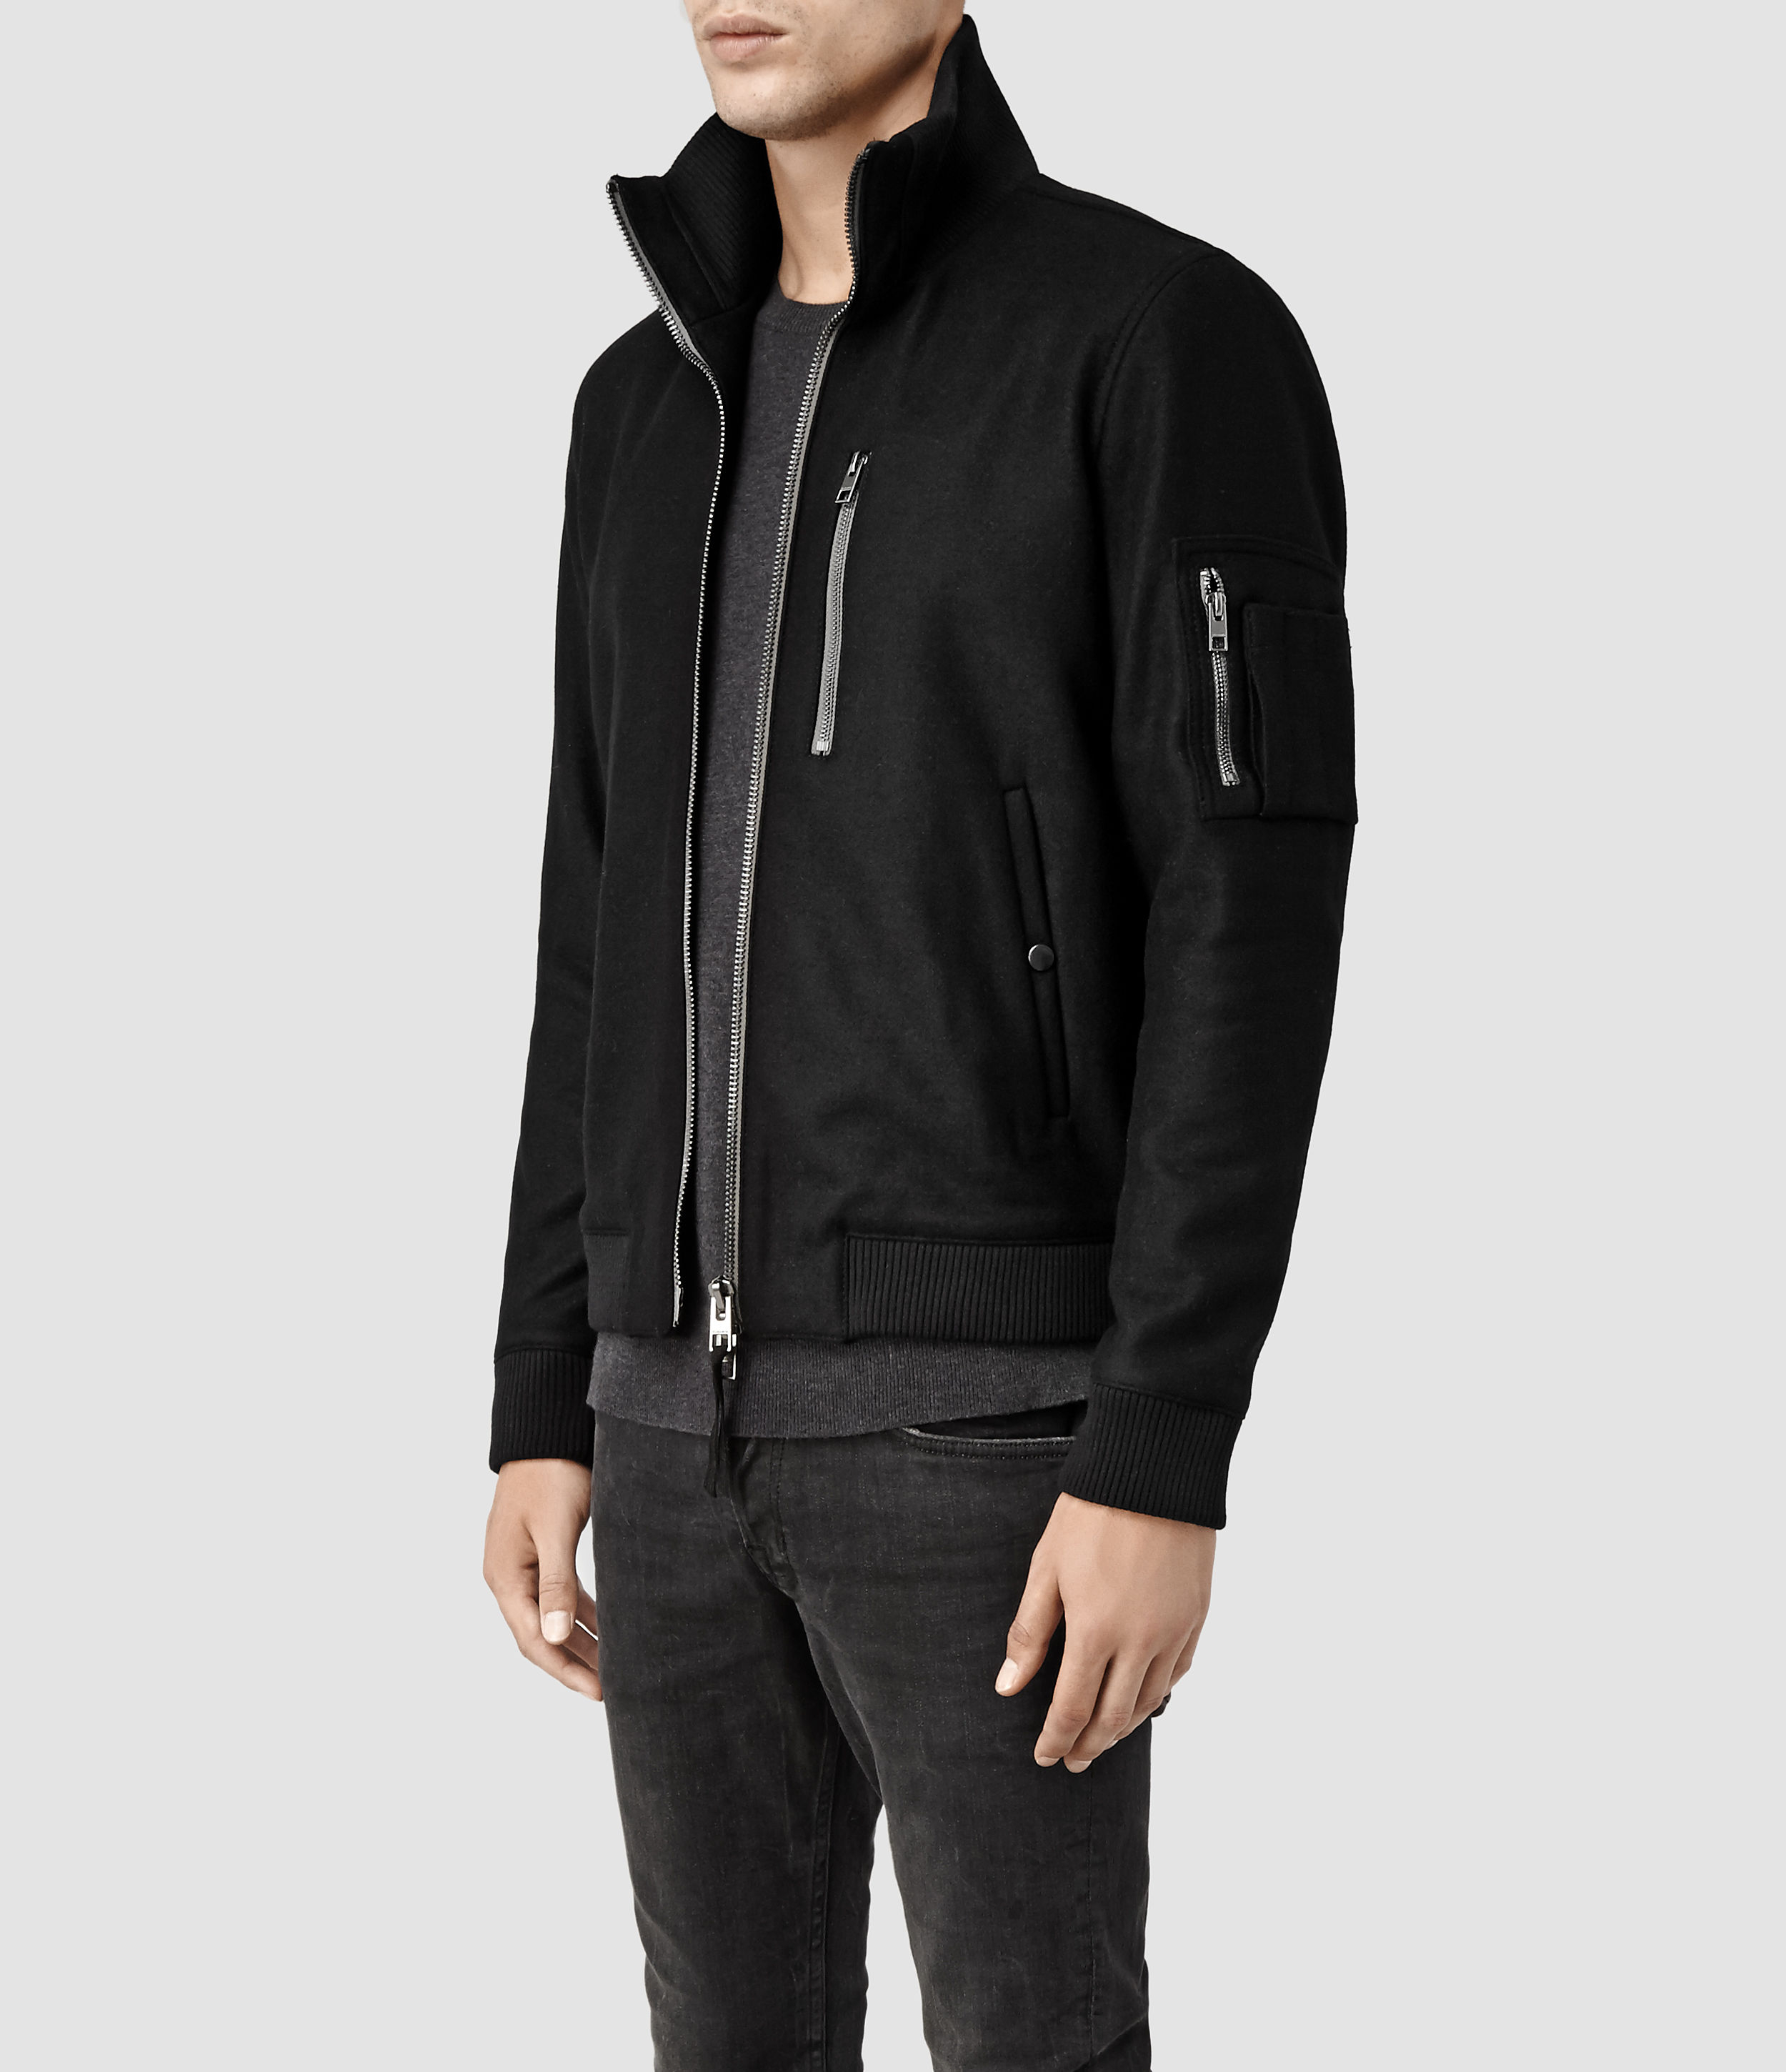 All saints black bomber jacket – Your jacket photo blog